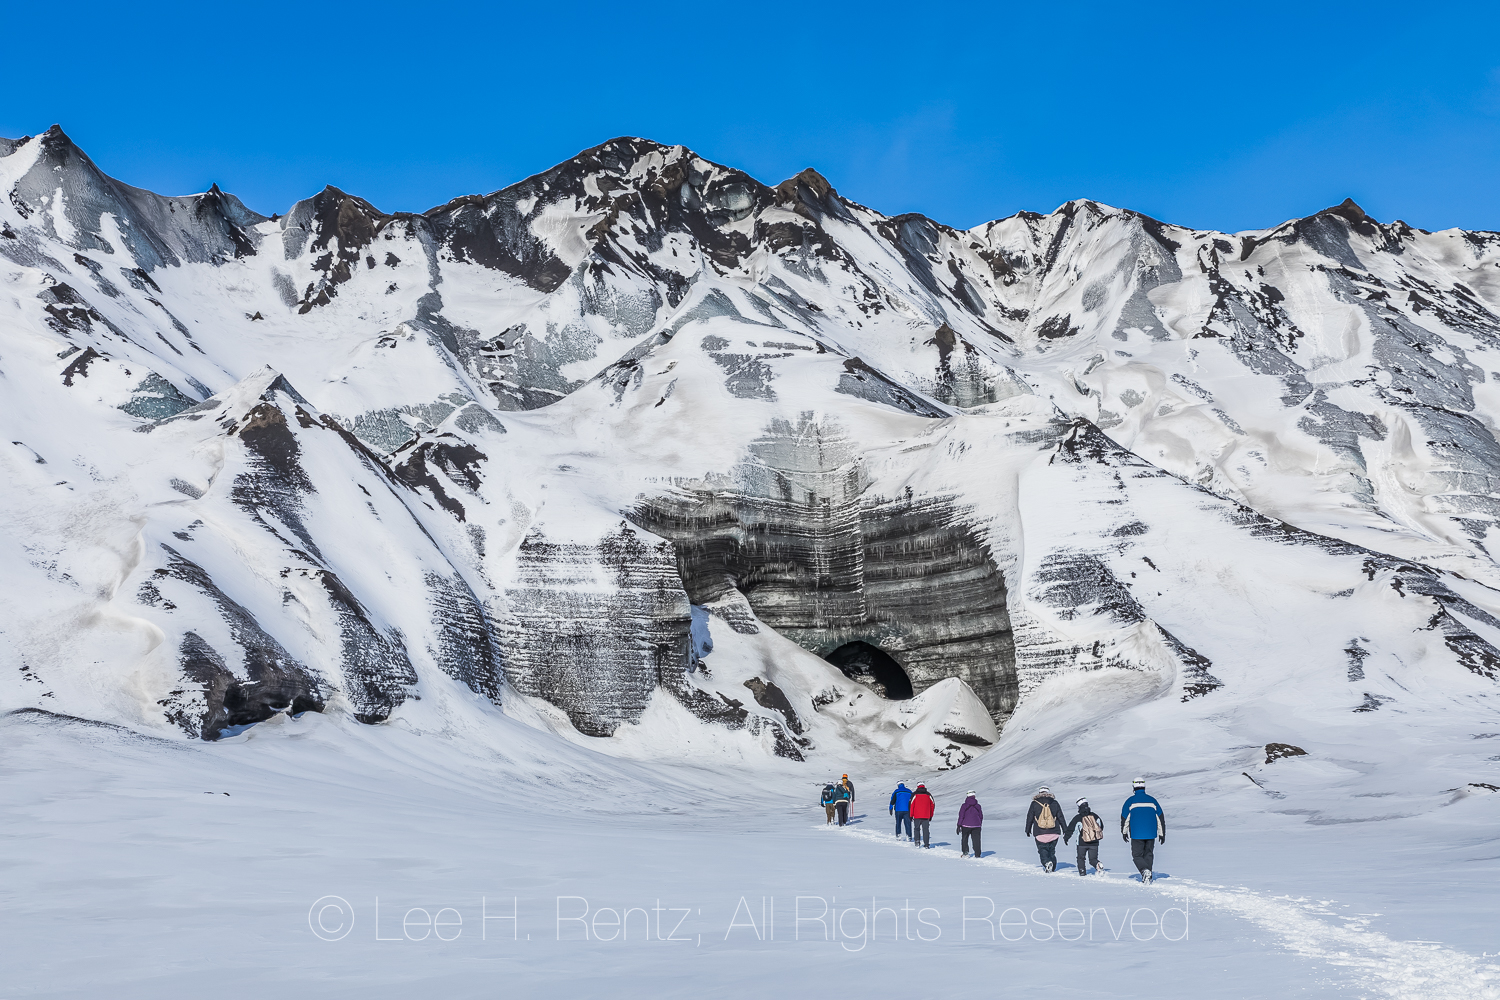 Adventurers walking toward an ice cave entrance in a lobe of Mýrdalsjökull Glacier, which sits atop Katla Volcano, in winter in Iceland